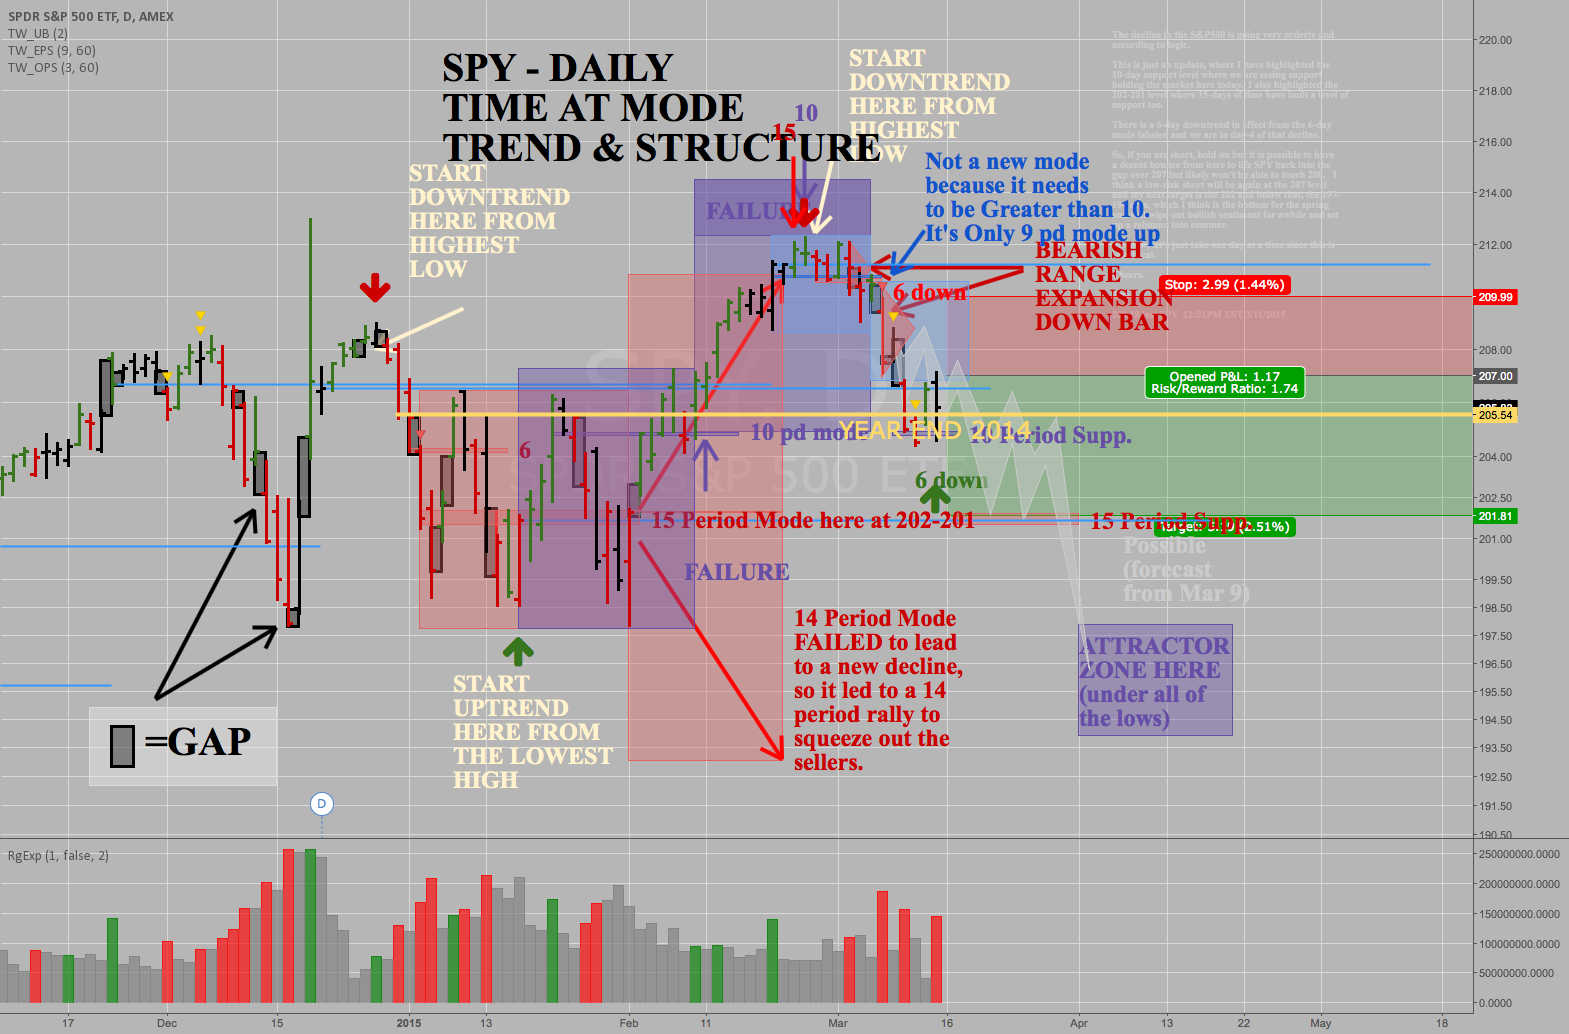 SPY S&P500 - RIGHT ON TARGET SO FAR